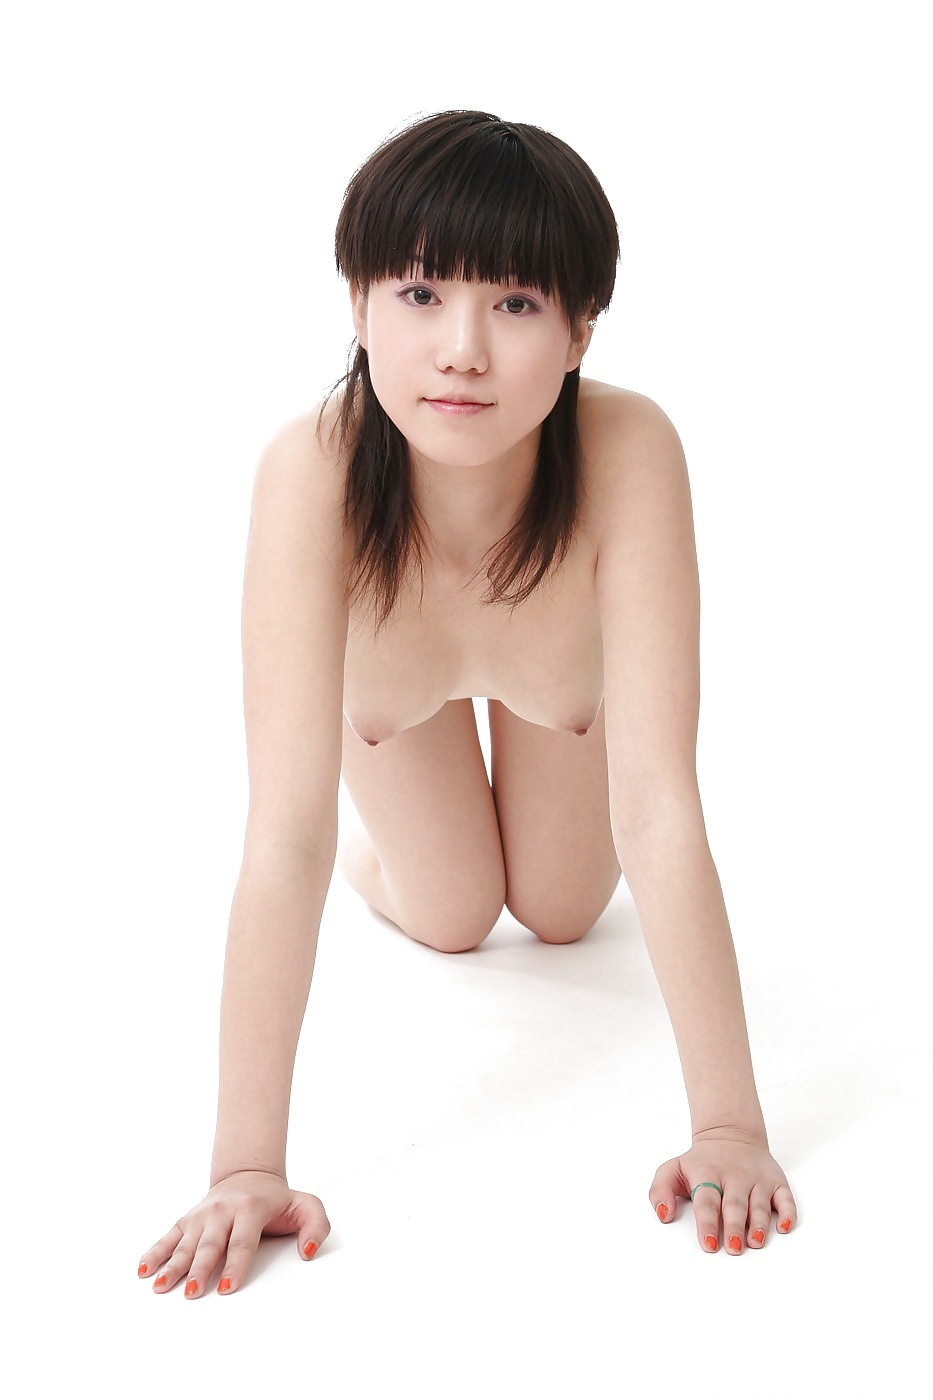 Yopung girl pictures